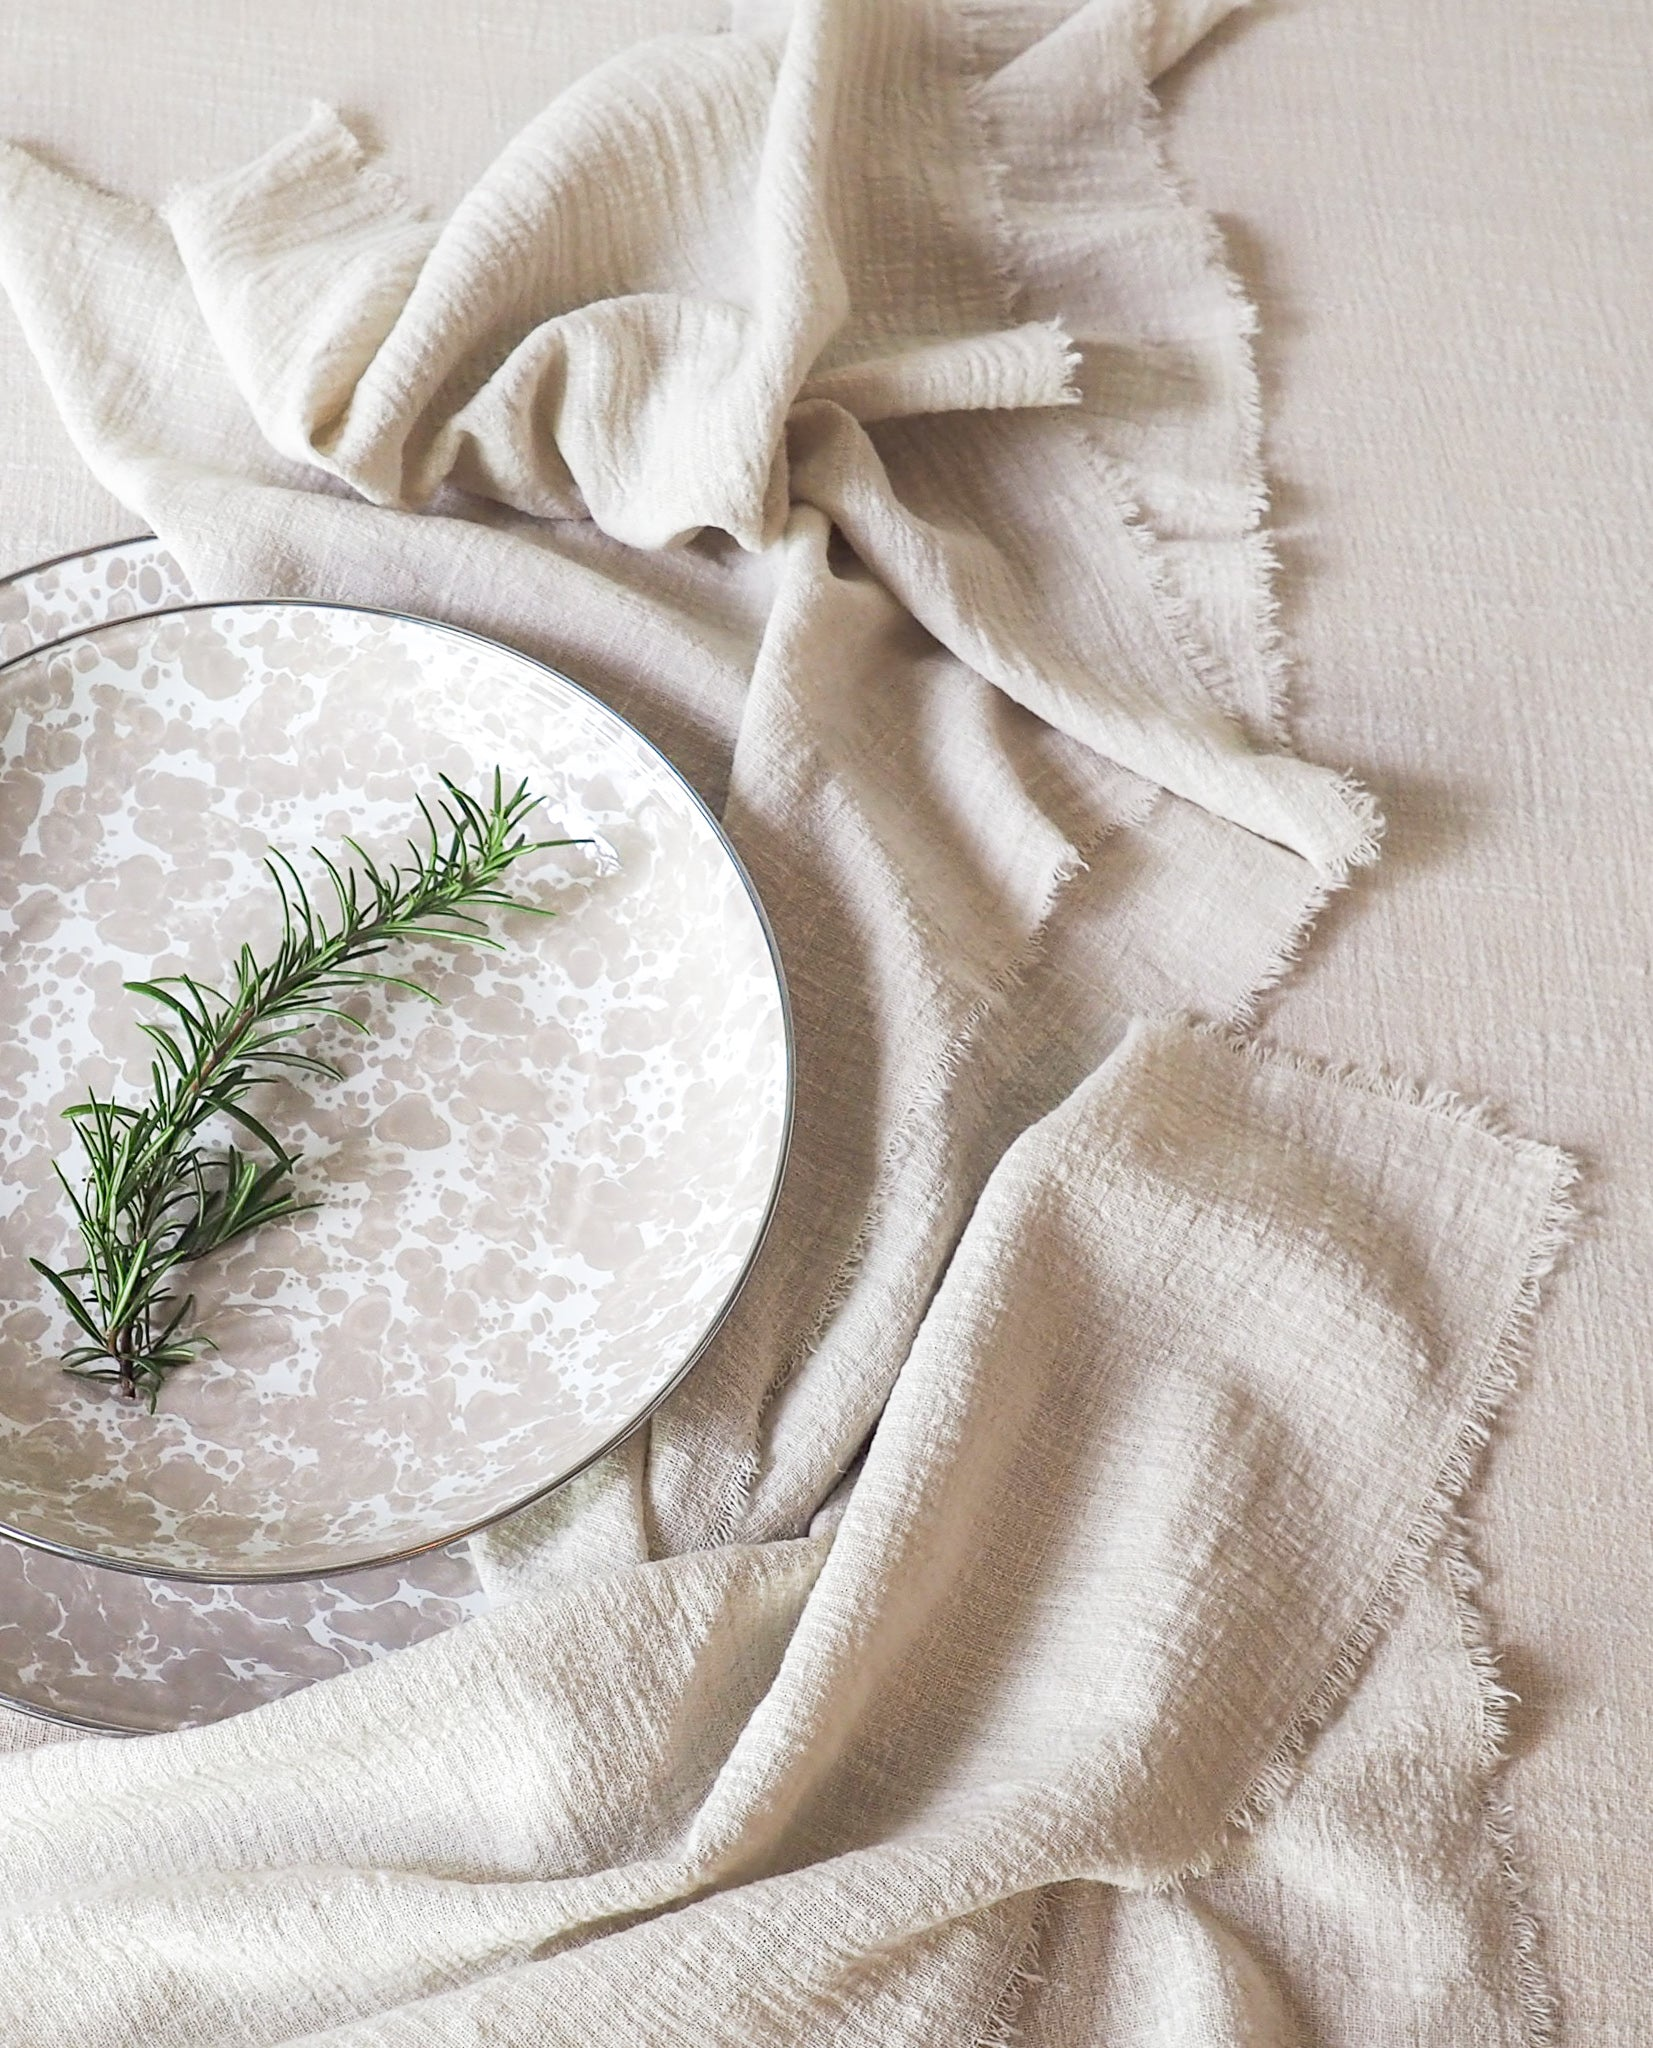 enamel plate styled with table linen sand cotton napkins and sand cotton table runner